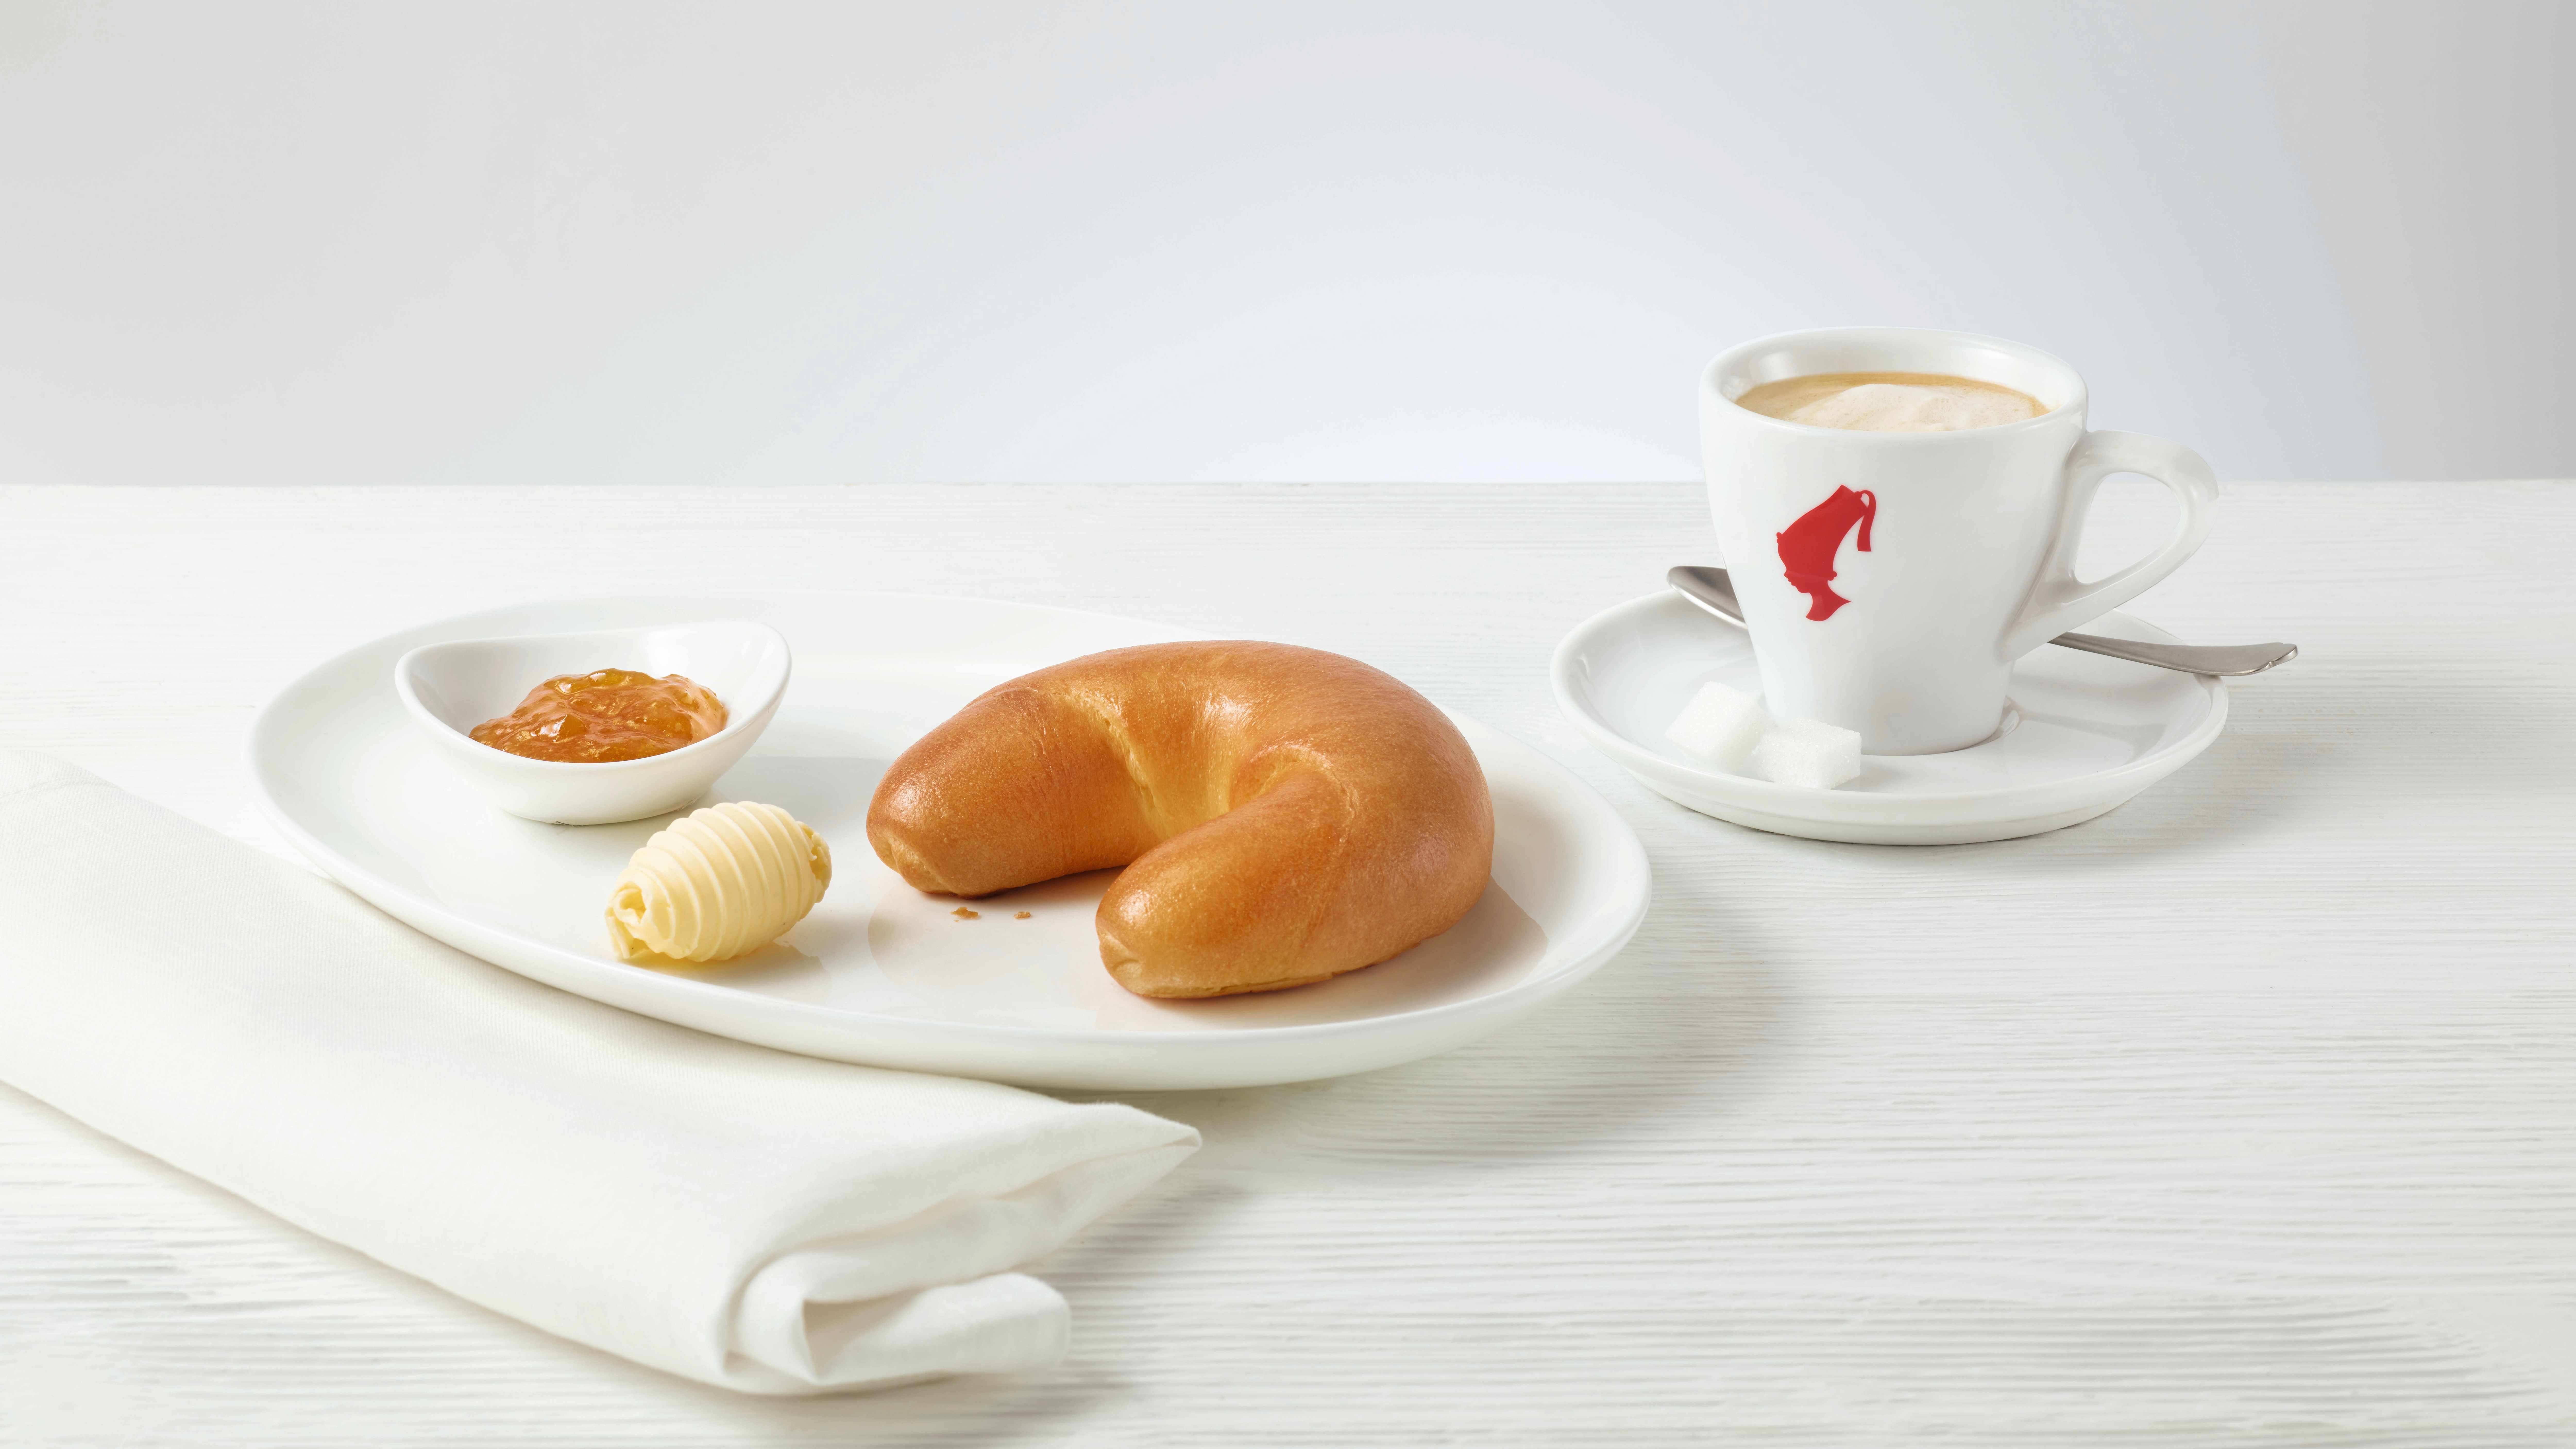 Viennese breakfast with a Viennese melange